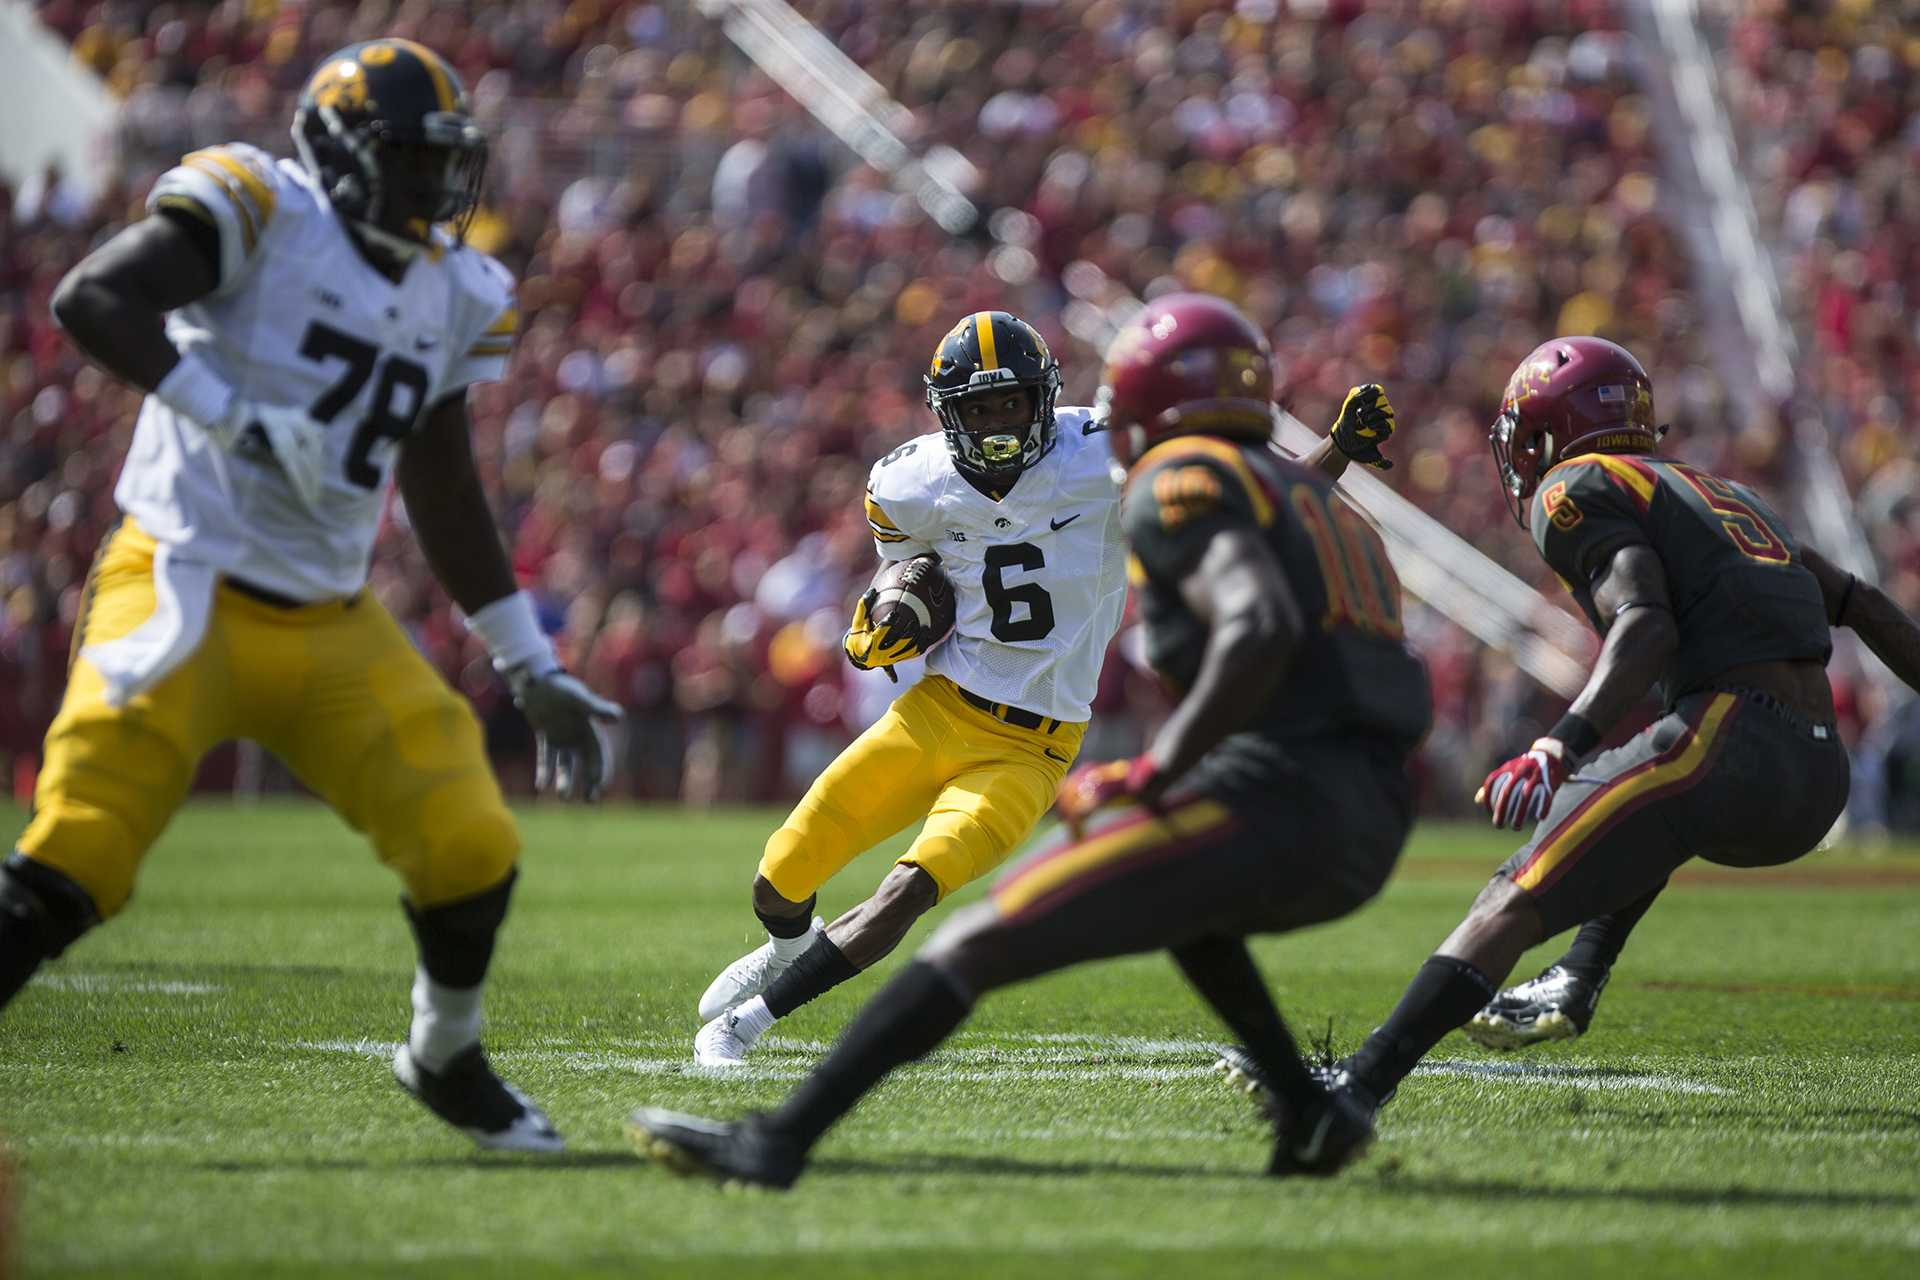 Hawkeye wide receiver Smith-Marsette takes difficult path to show ability, personality